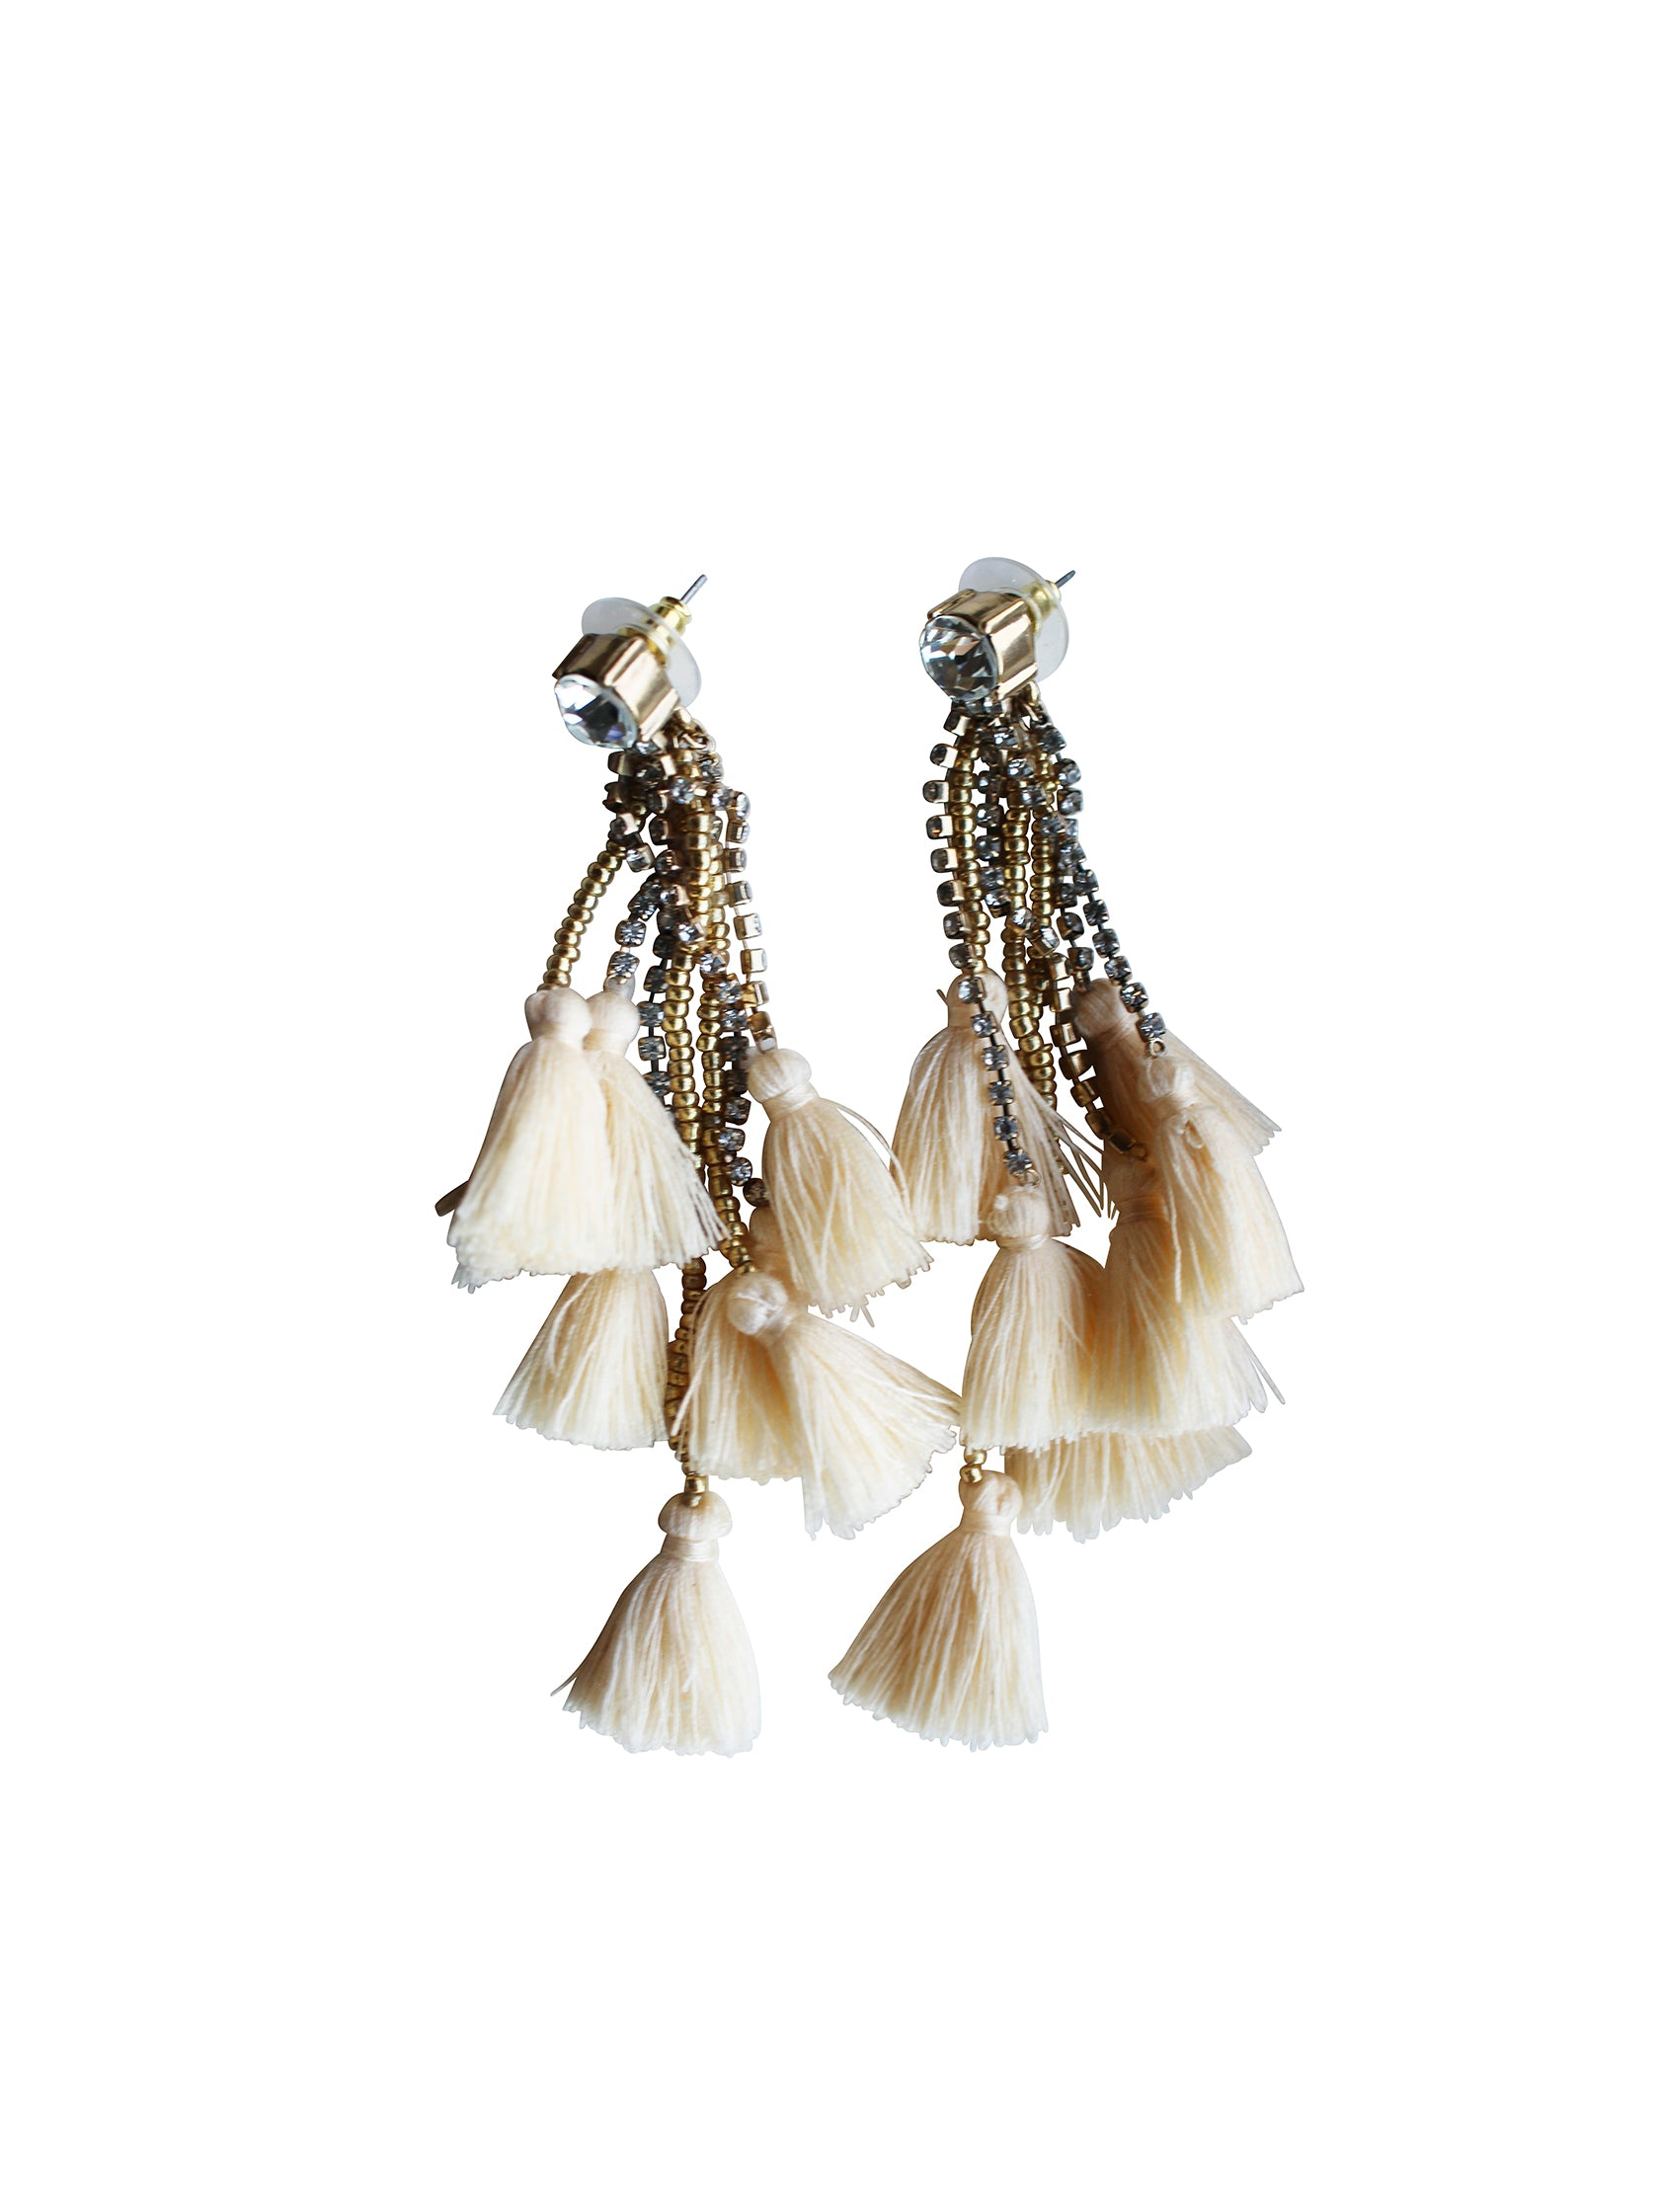 Women outfit in a earrings rental from Gemelli called Everything Earrings